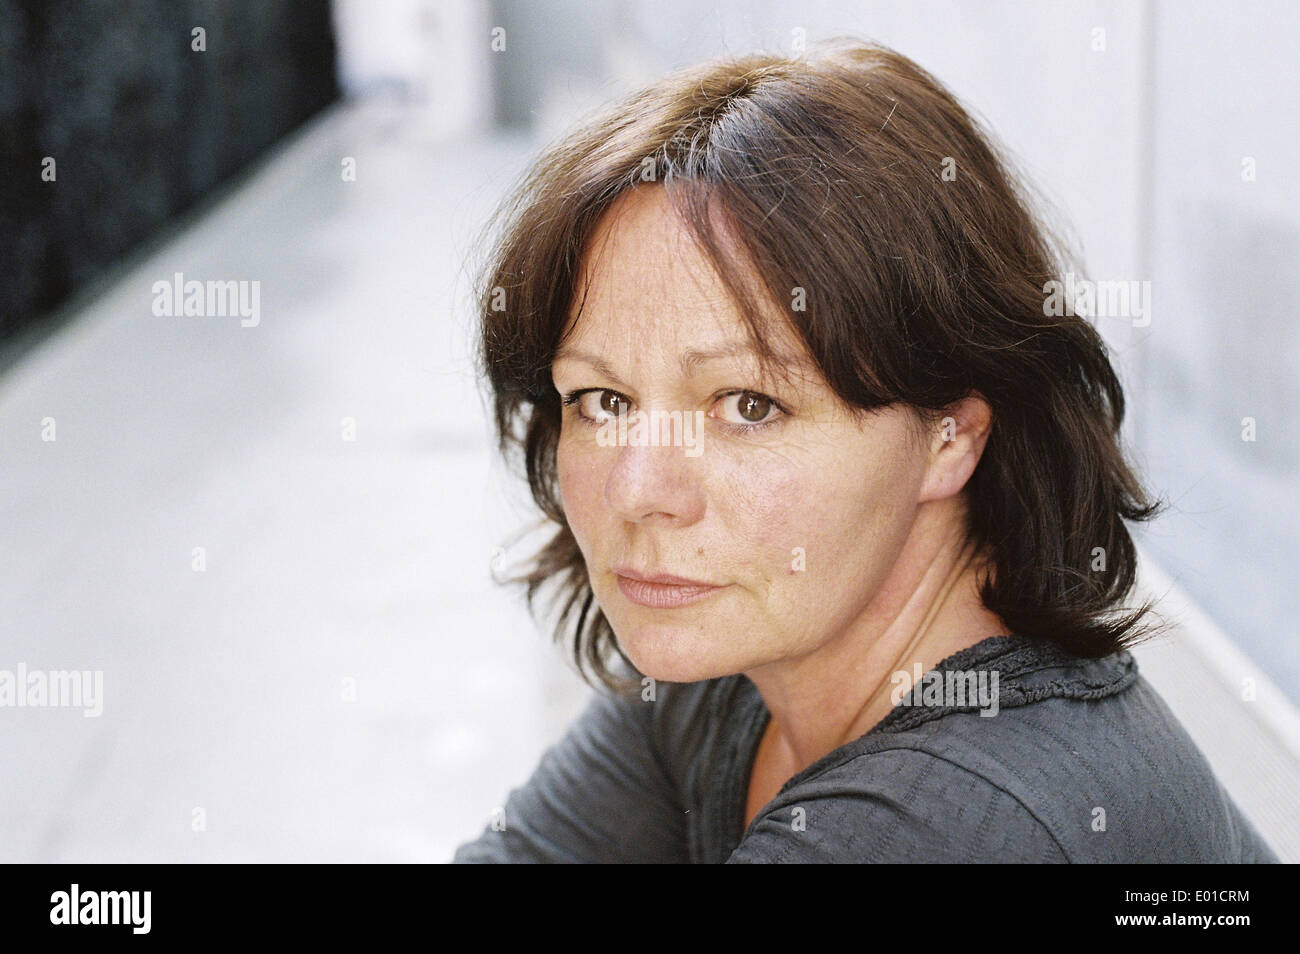 Andrea Gerster - Stock Image